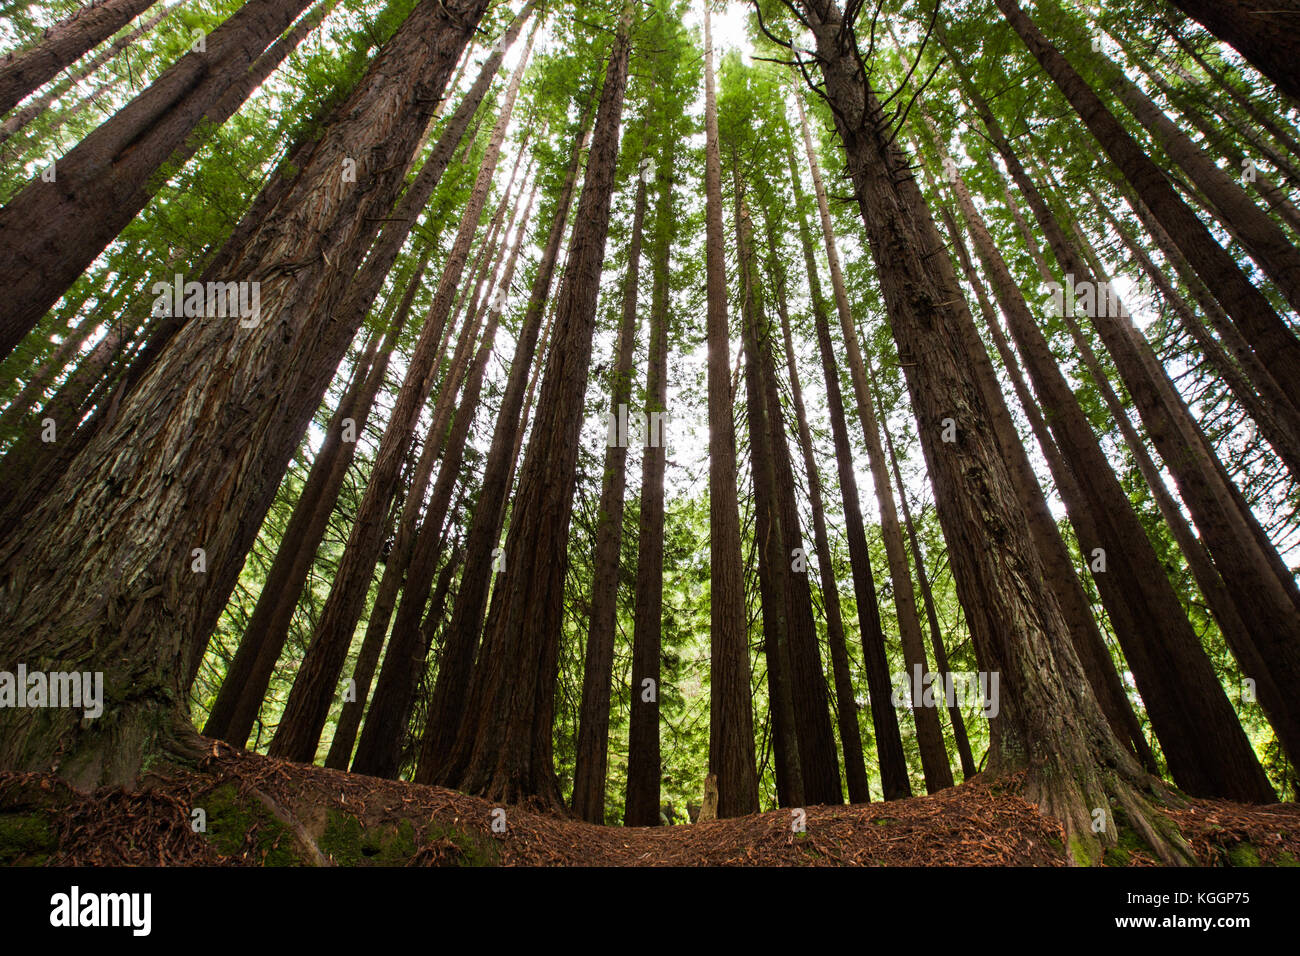 The photo was taken in the Californian Redwood Forest in the Otways National Park, Victoria. - Stock Image